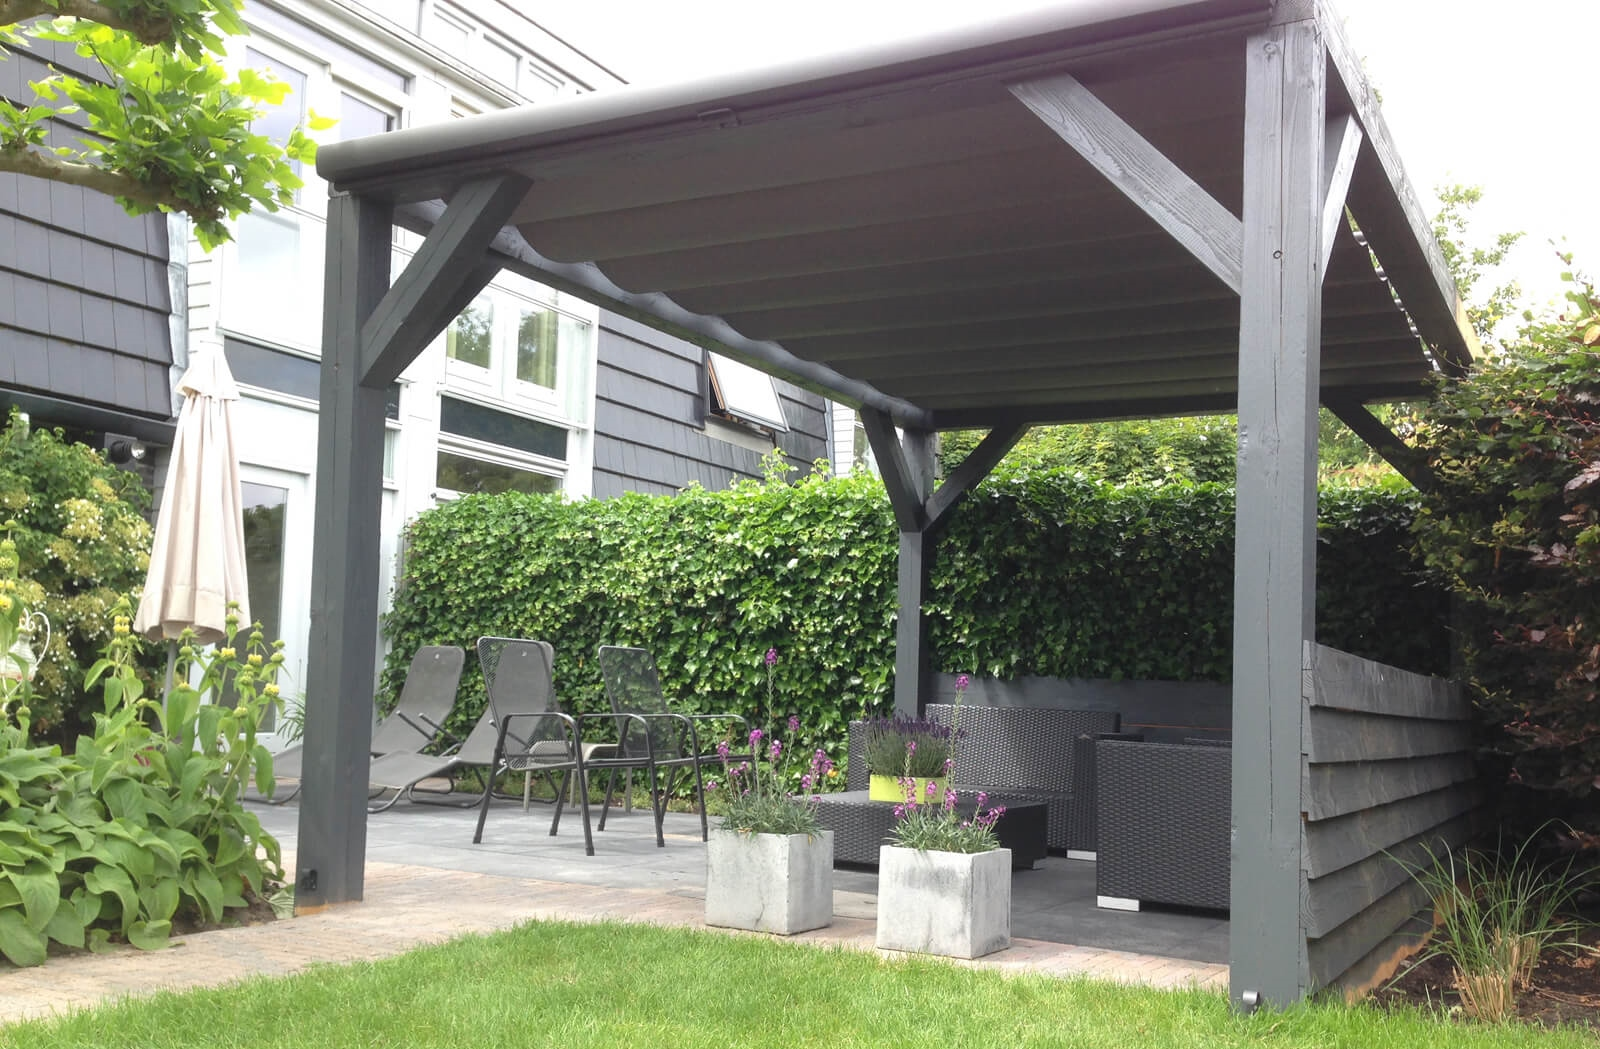 overkapping over terras of tuin solem van luxxout. Black Bedroom Furniture Sets. Home Design Ideas